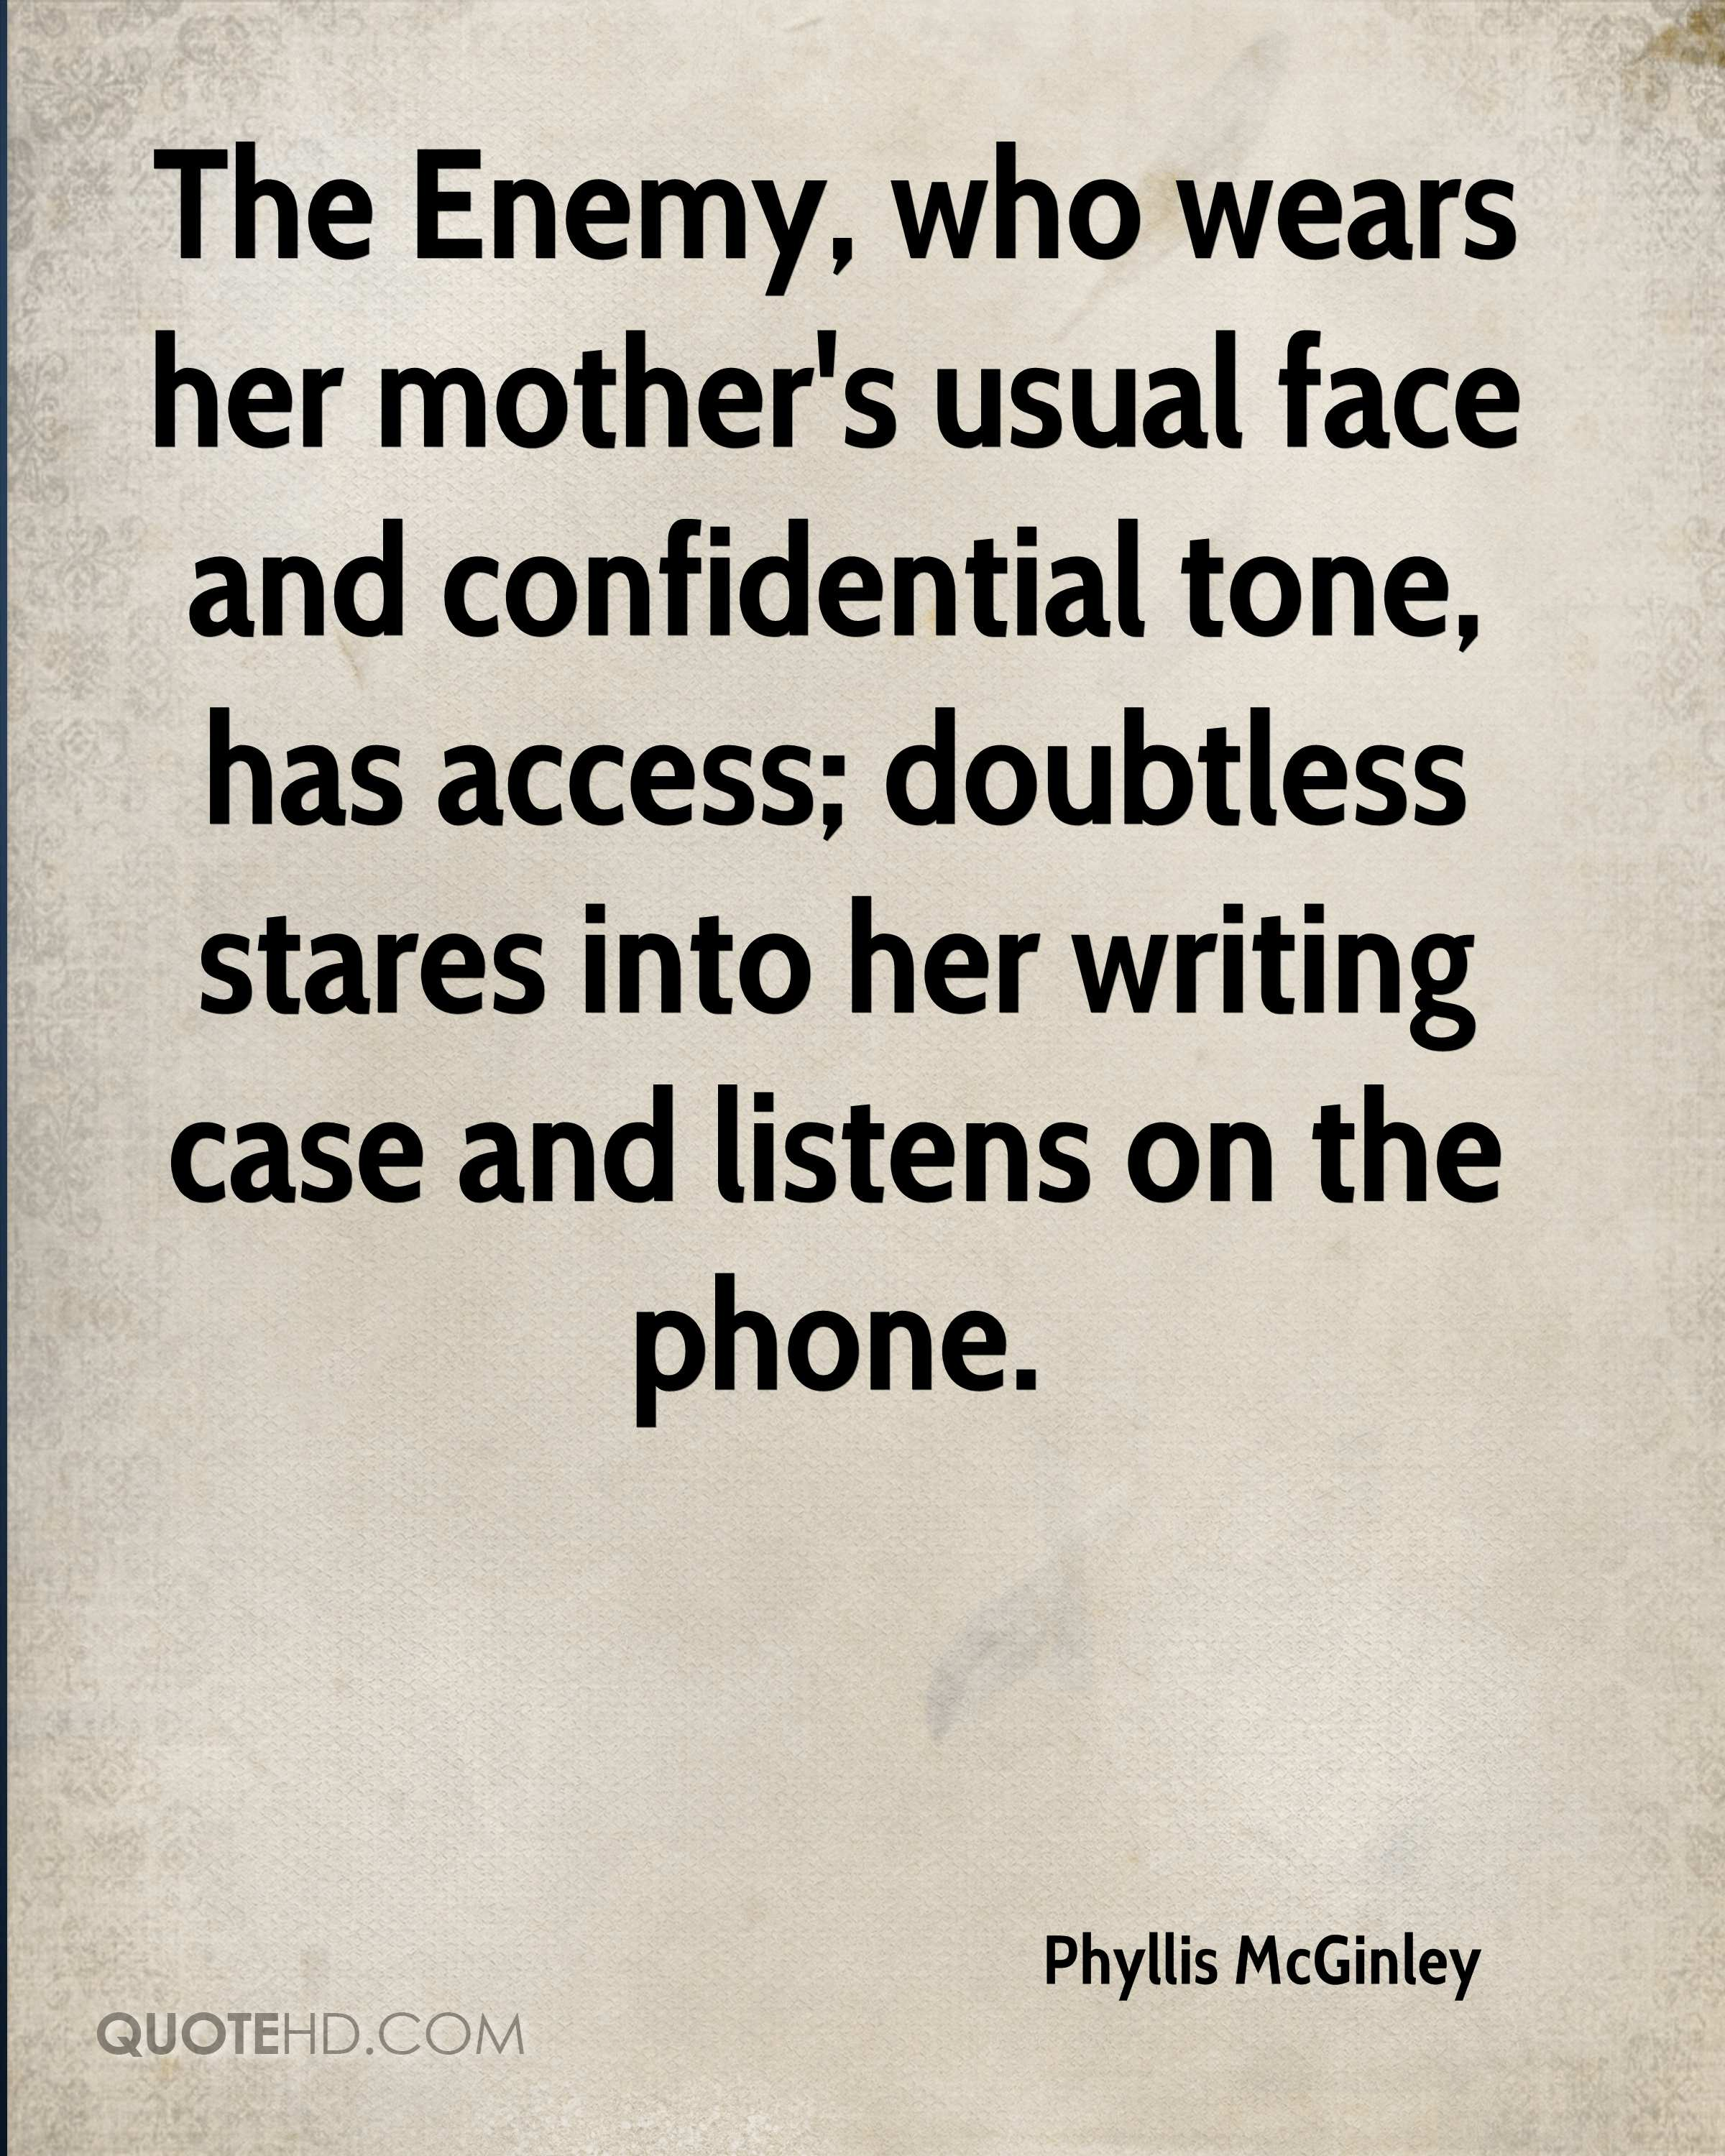 The Enemy, who wears her mother's usual face and confidential tone, has access; doubtless stares into her writing case and listens on the phone.